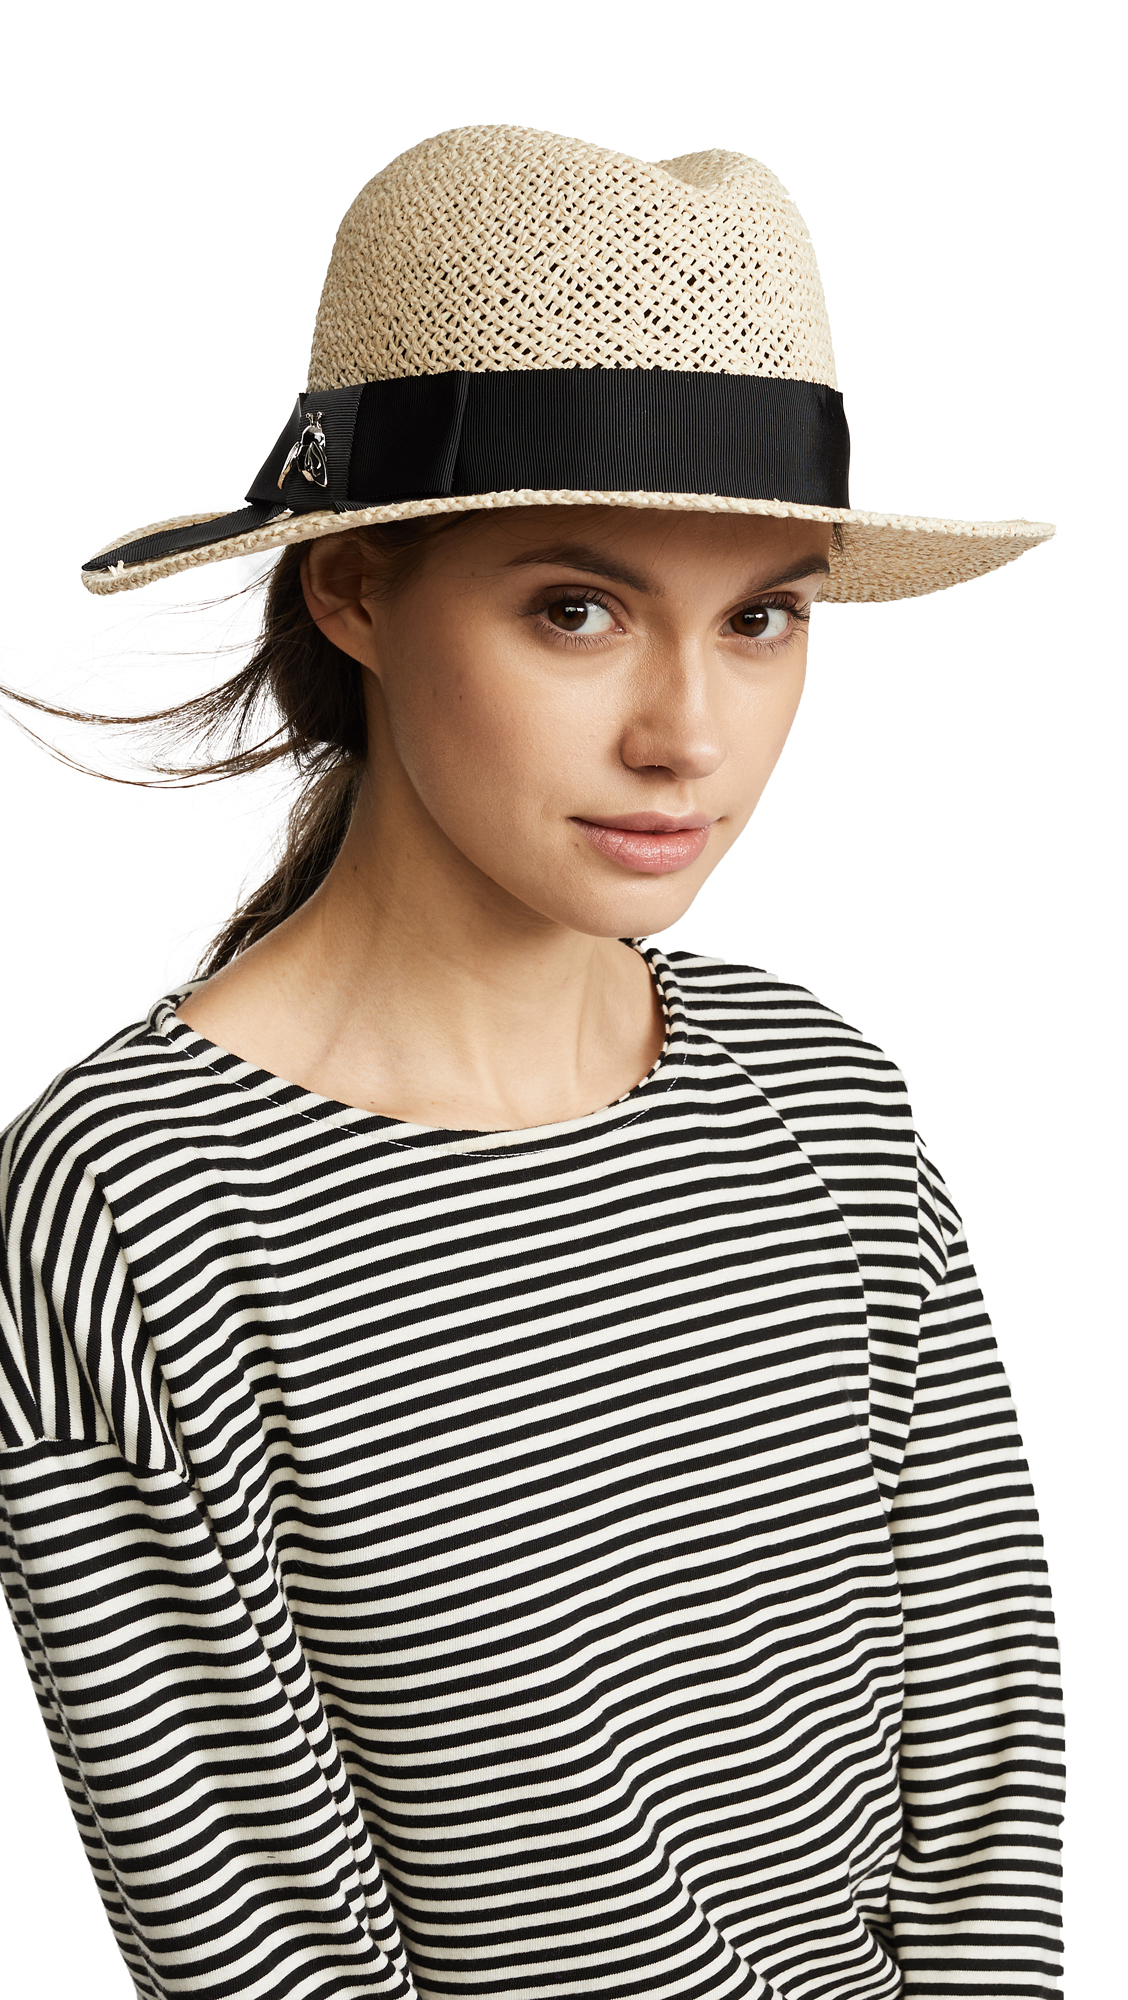 Kate Spade New York Bee Hardware Tribly Hat  12158e9aa4d